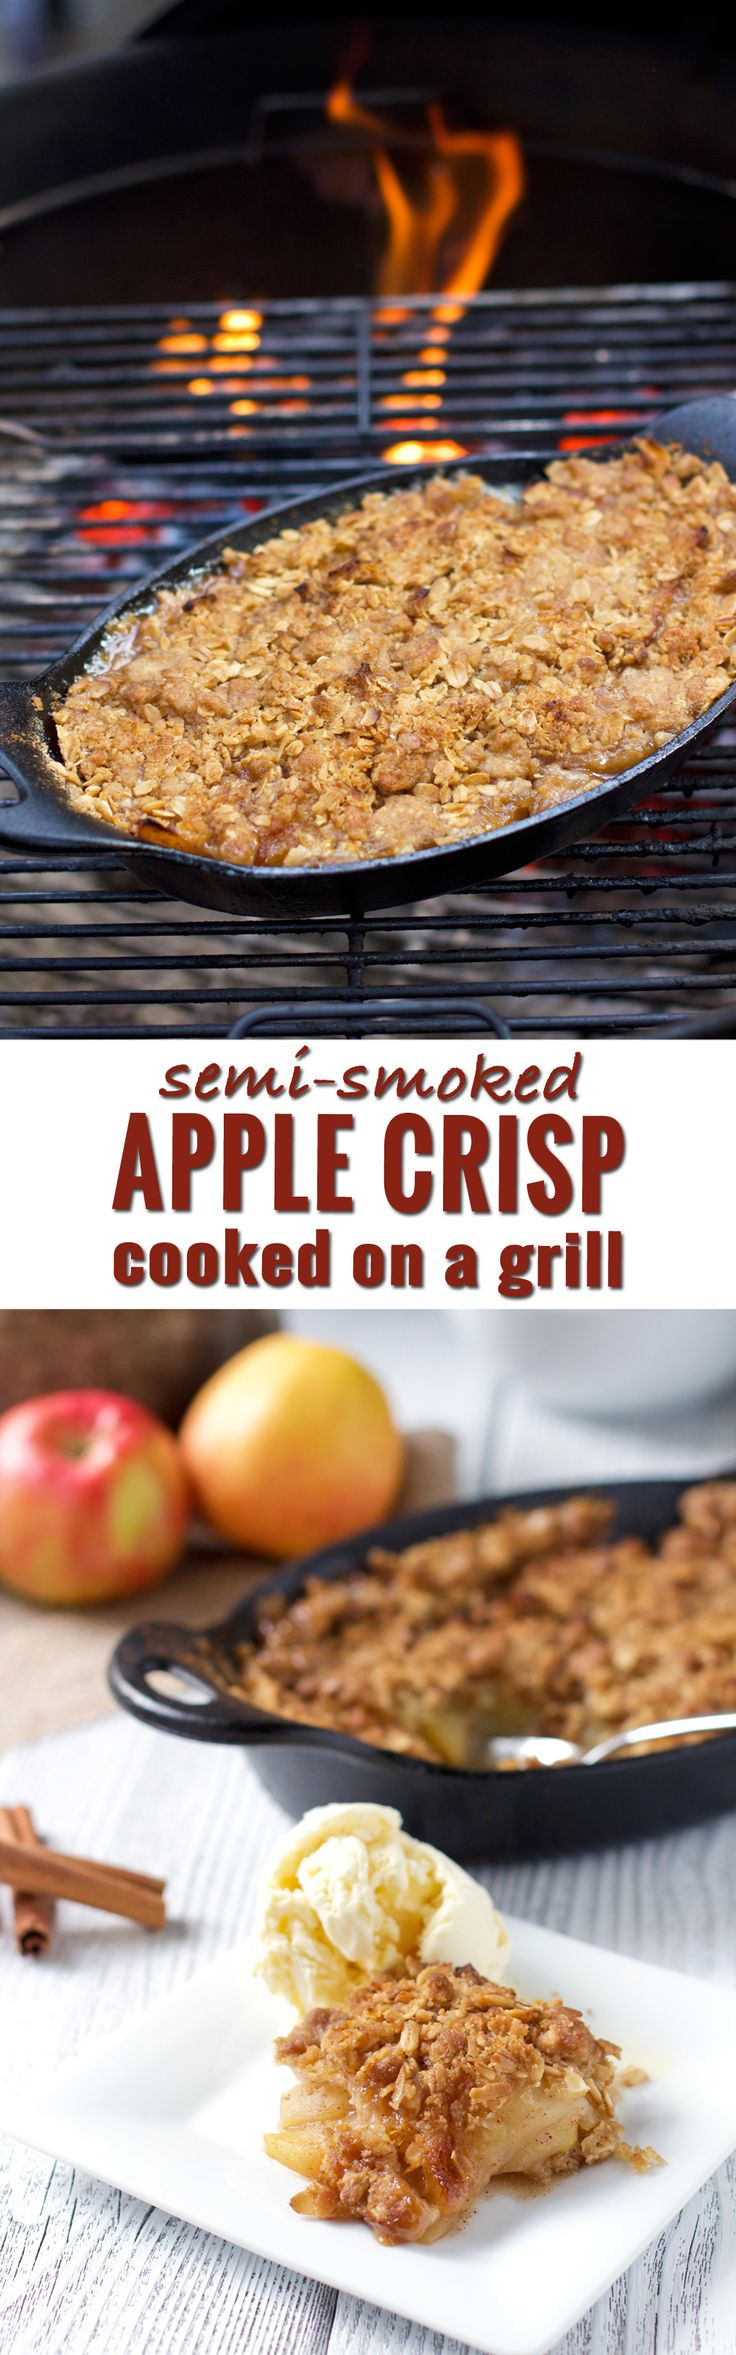 How to make an apple crisp on the grill (for four people). Did you know you can also add smoky flavor without needing a smoker? This is the perfect fall dessert for grill lovers. The entire family will love it!